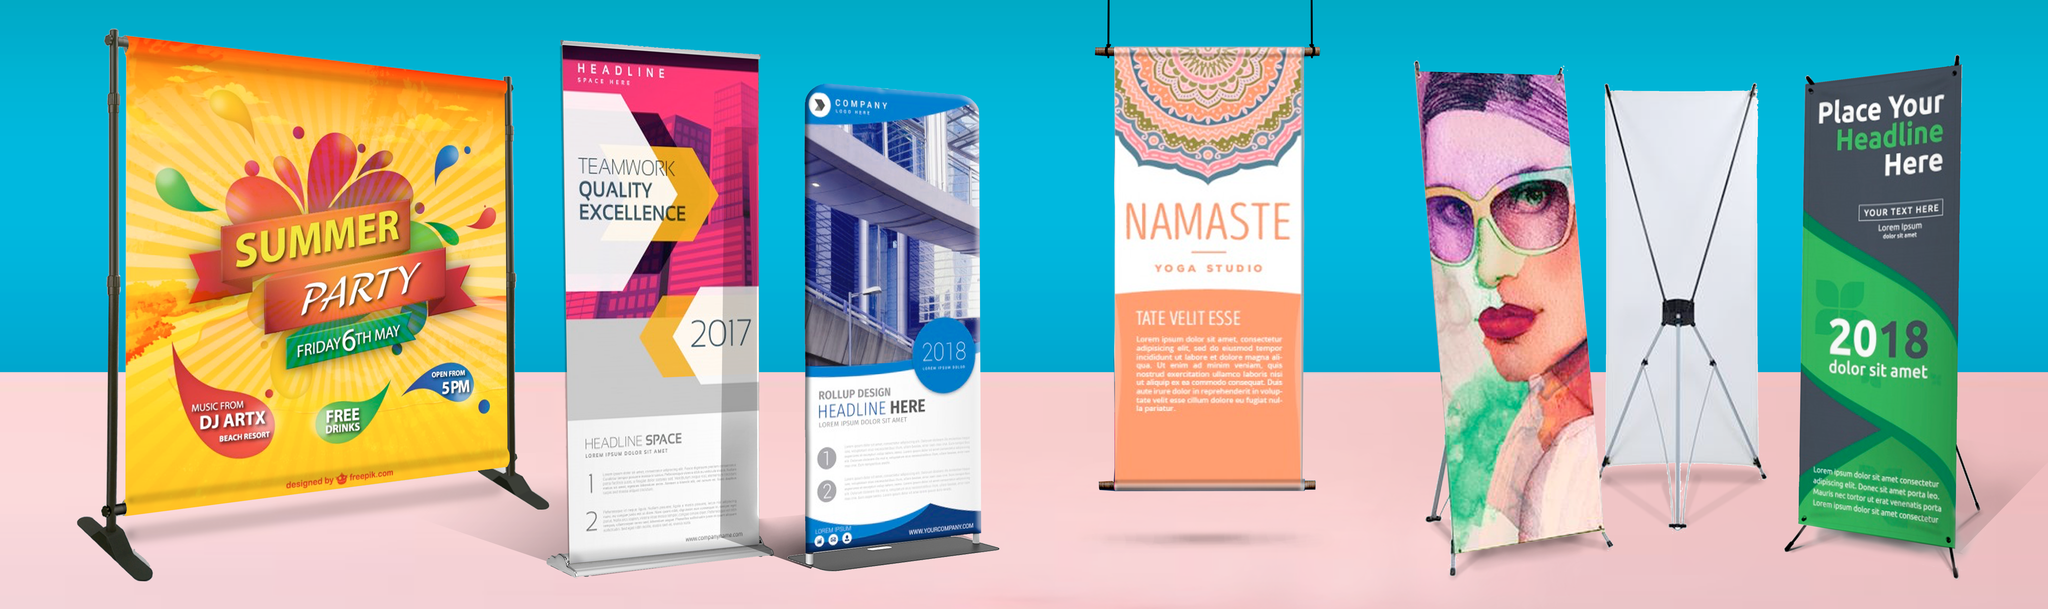 custom printed banners and stand up banners in Miami, FL